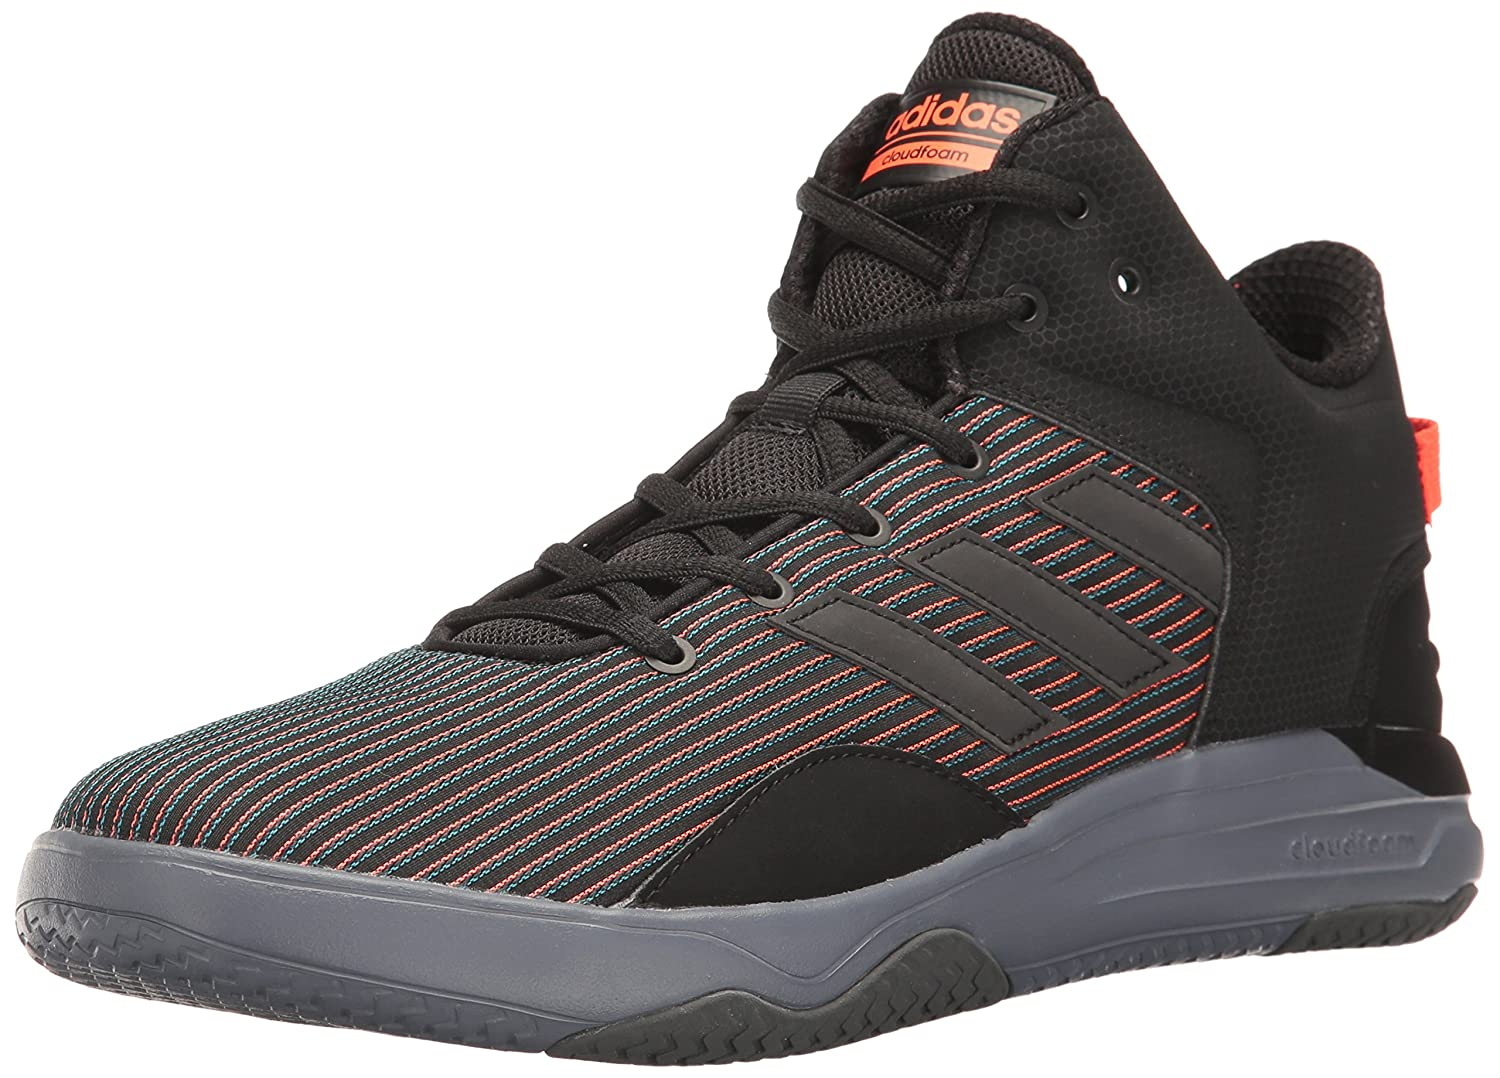 adidas Men's Cloudfoam Revival Mid Sneakers NEO Child code (Shoes)